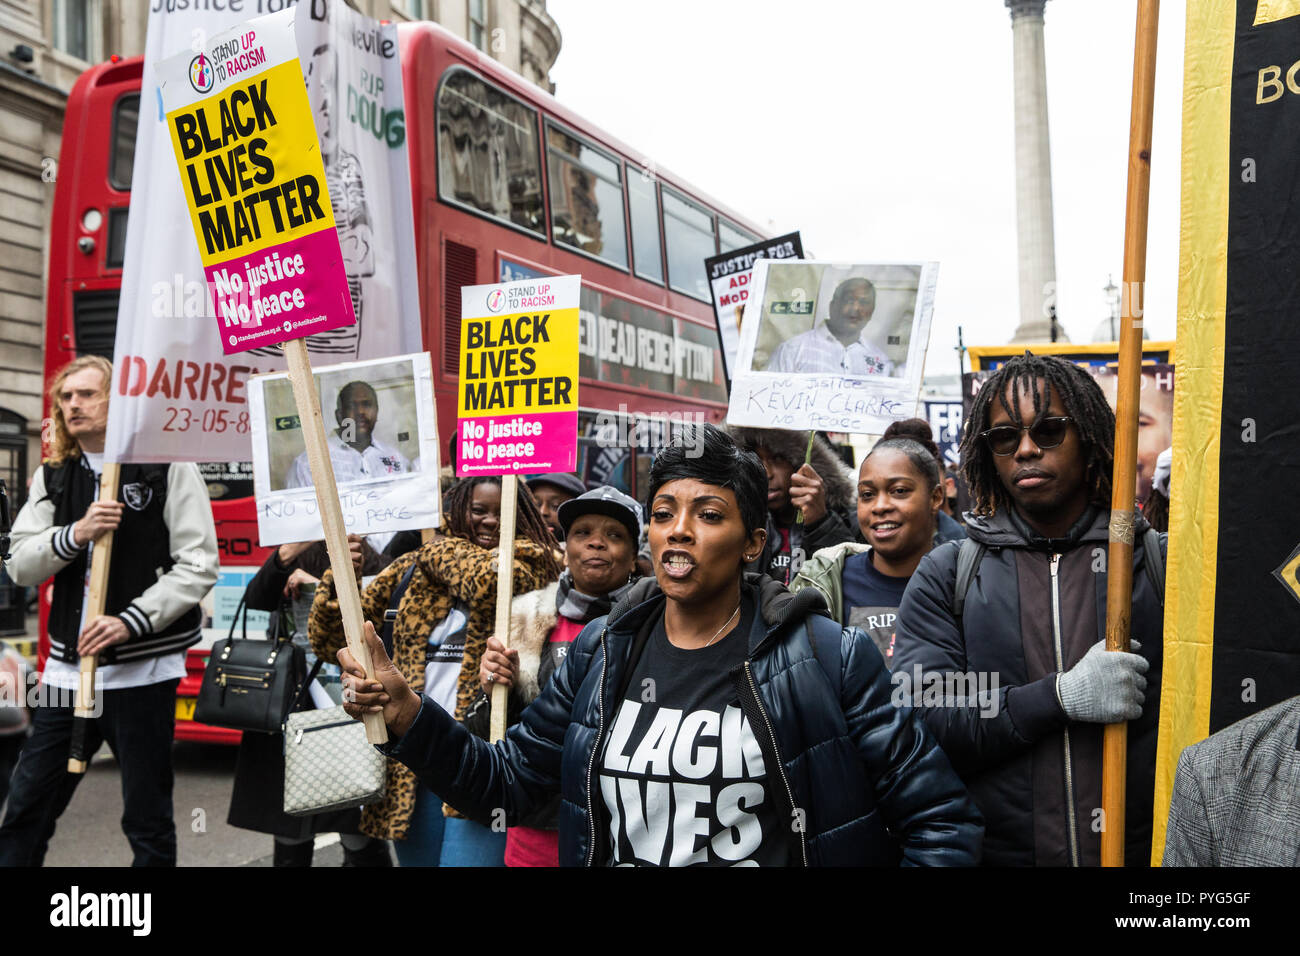 London, UK. 27th October, 2018. Kadisha Brown-Burrell, sister of Kingsley Burrell, marches with fellow campaigners from the United Families and Friends Campaign (UFFC) taking part in the 20th annual procession to Downing Street in remembrance of family members and friends who died in police custody, prison, immigration detention or secure psychiatric hospitals. Kingsley Burrell, 29, died from a cardiac arrest in March 2011 after being restrained whilst detained by West Midlands Police. Credit: Mark Kerrison/Alamy Live News - Stock Image